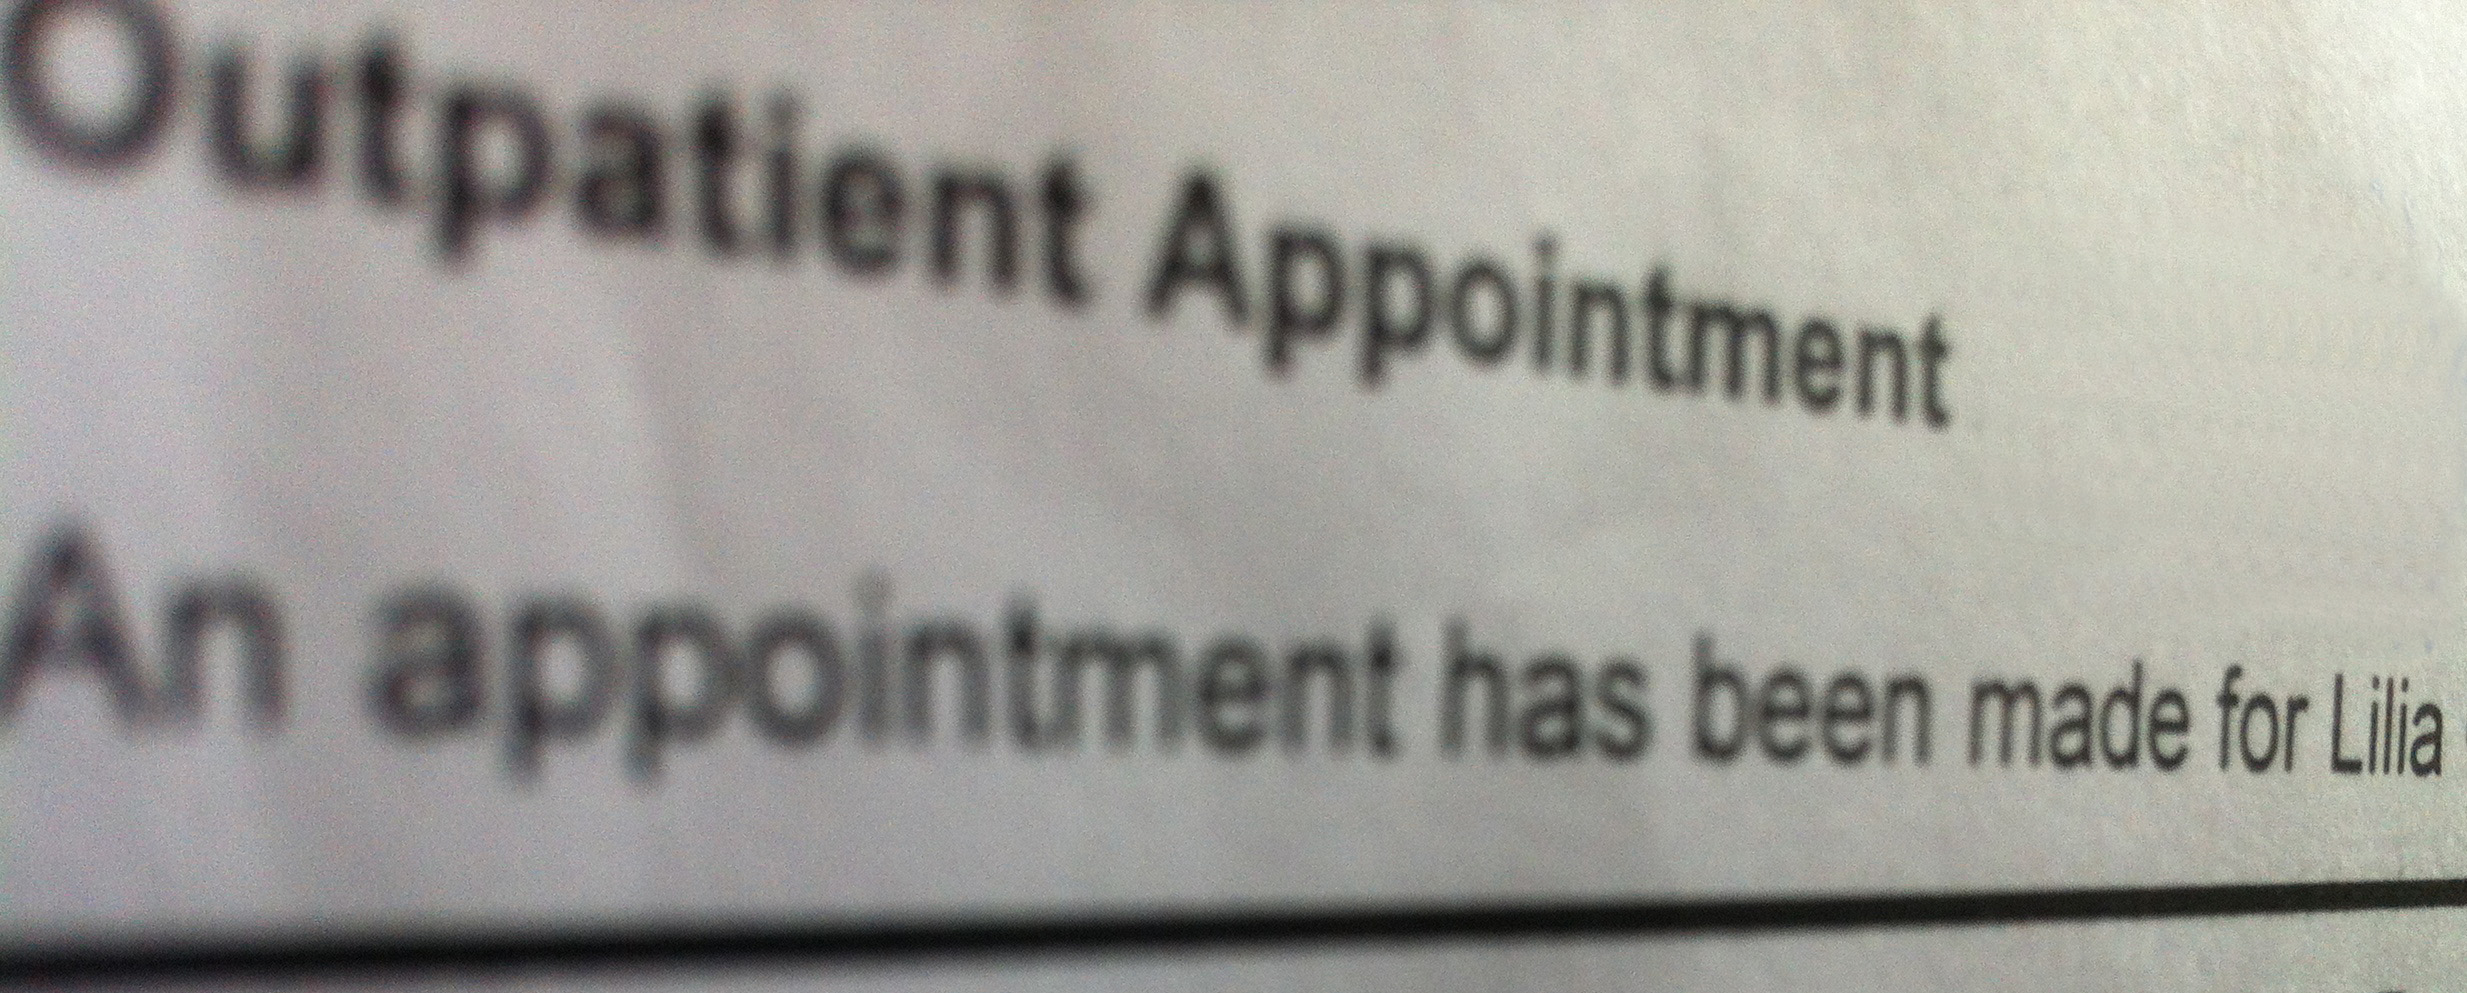 outpatient appointment letter